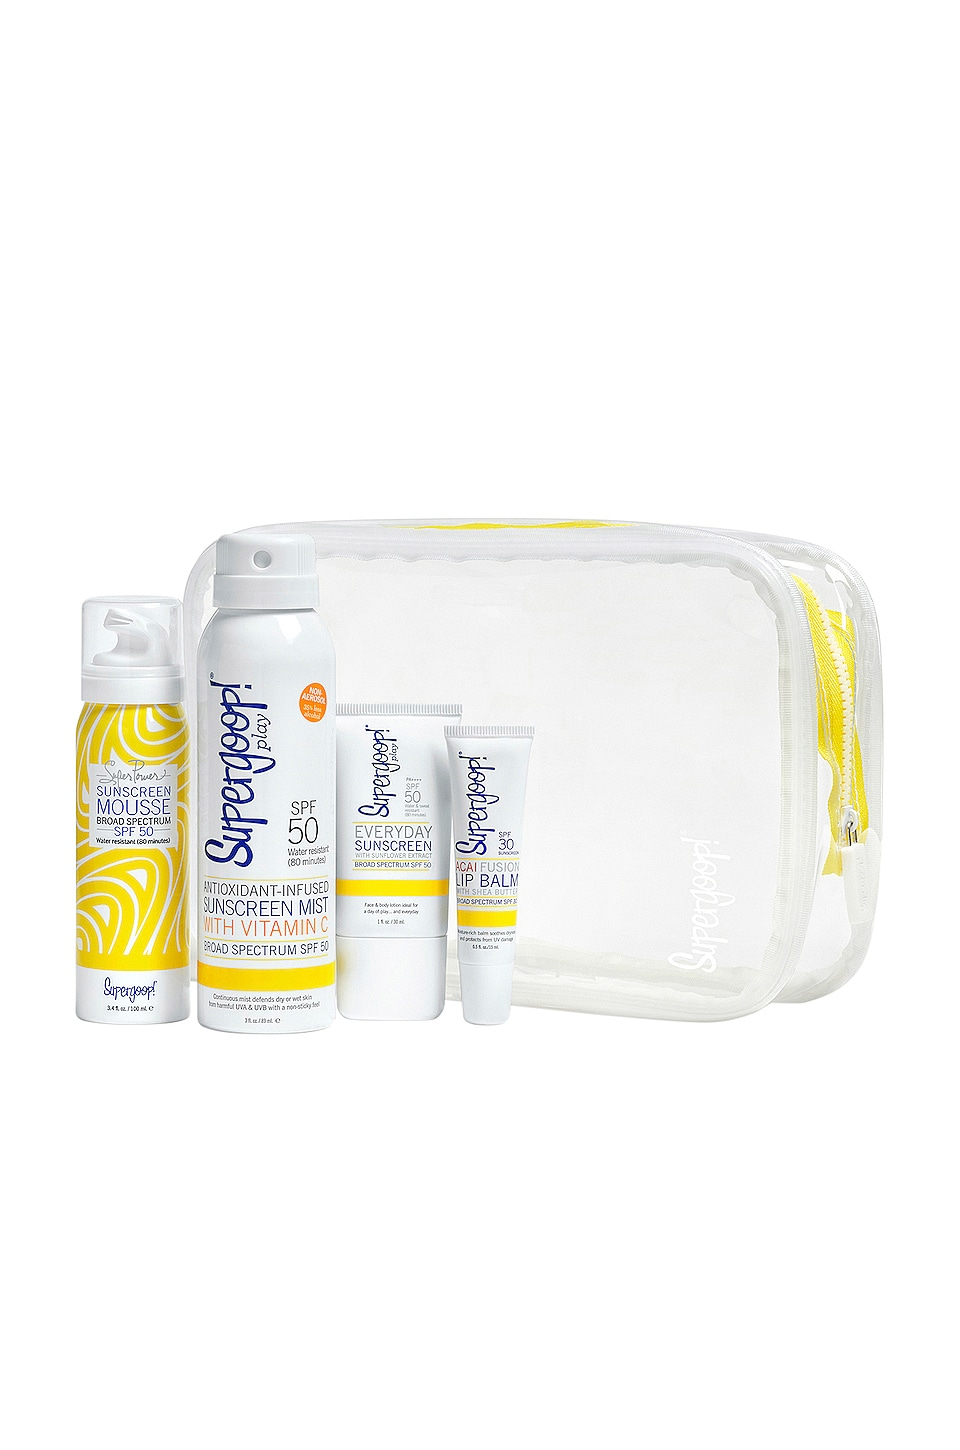 Supergoop! Live Bright Sunscreen Kit